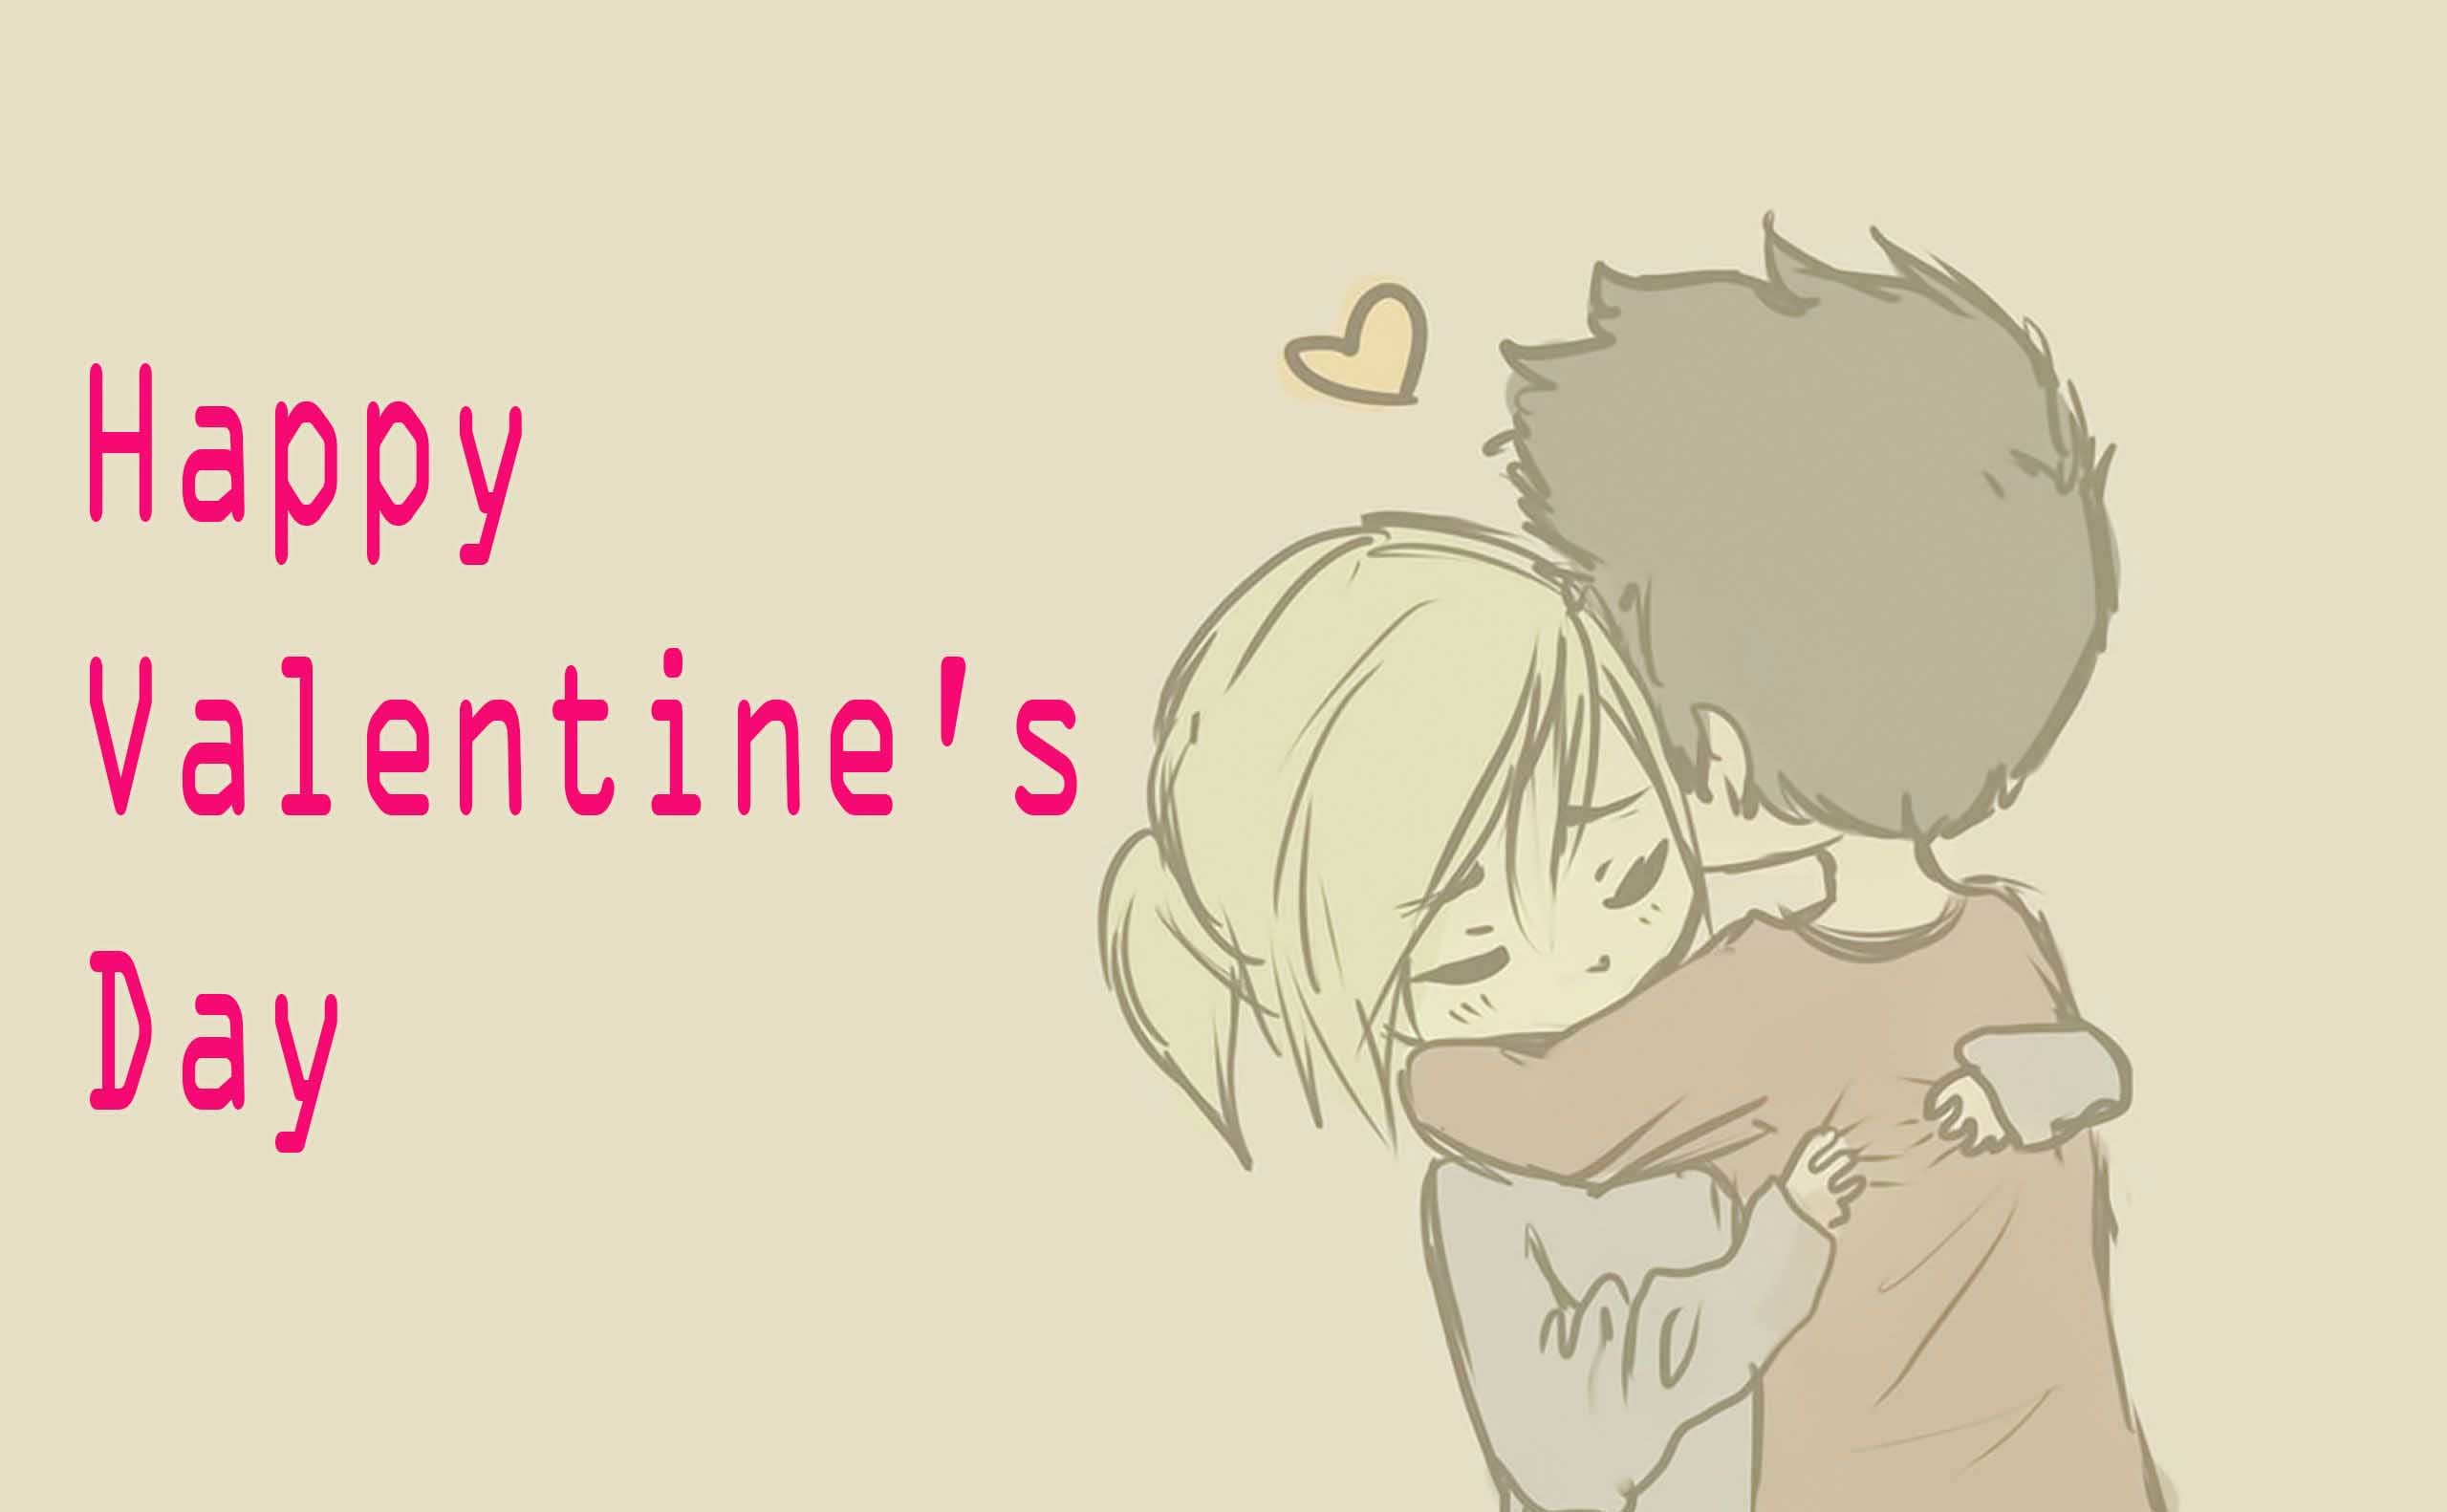 2560x1582 Cartoon love couple hd wallpaper for happy valentines day free download. Â«Â«